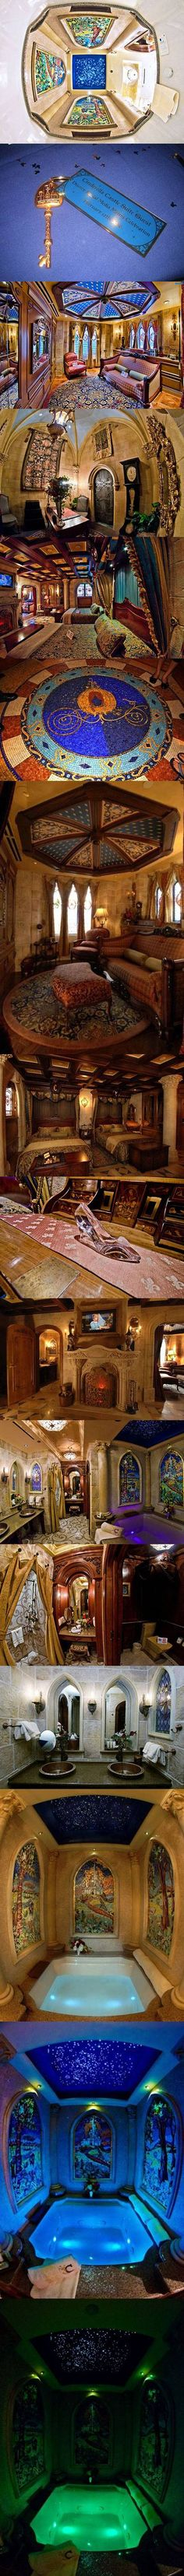 This is what's really inside Cinderella's Castle at Walt Disney World. As a kid I always dreamed of staying in here